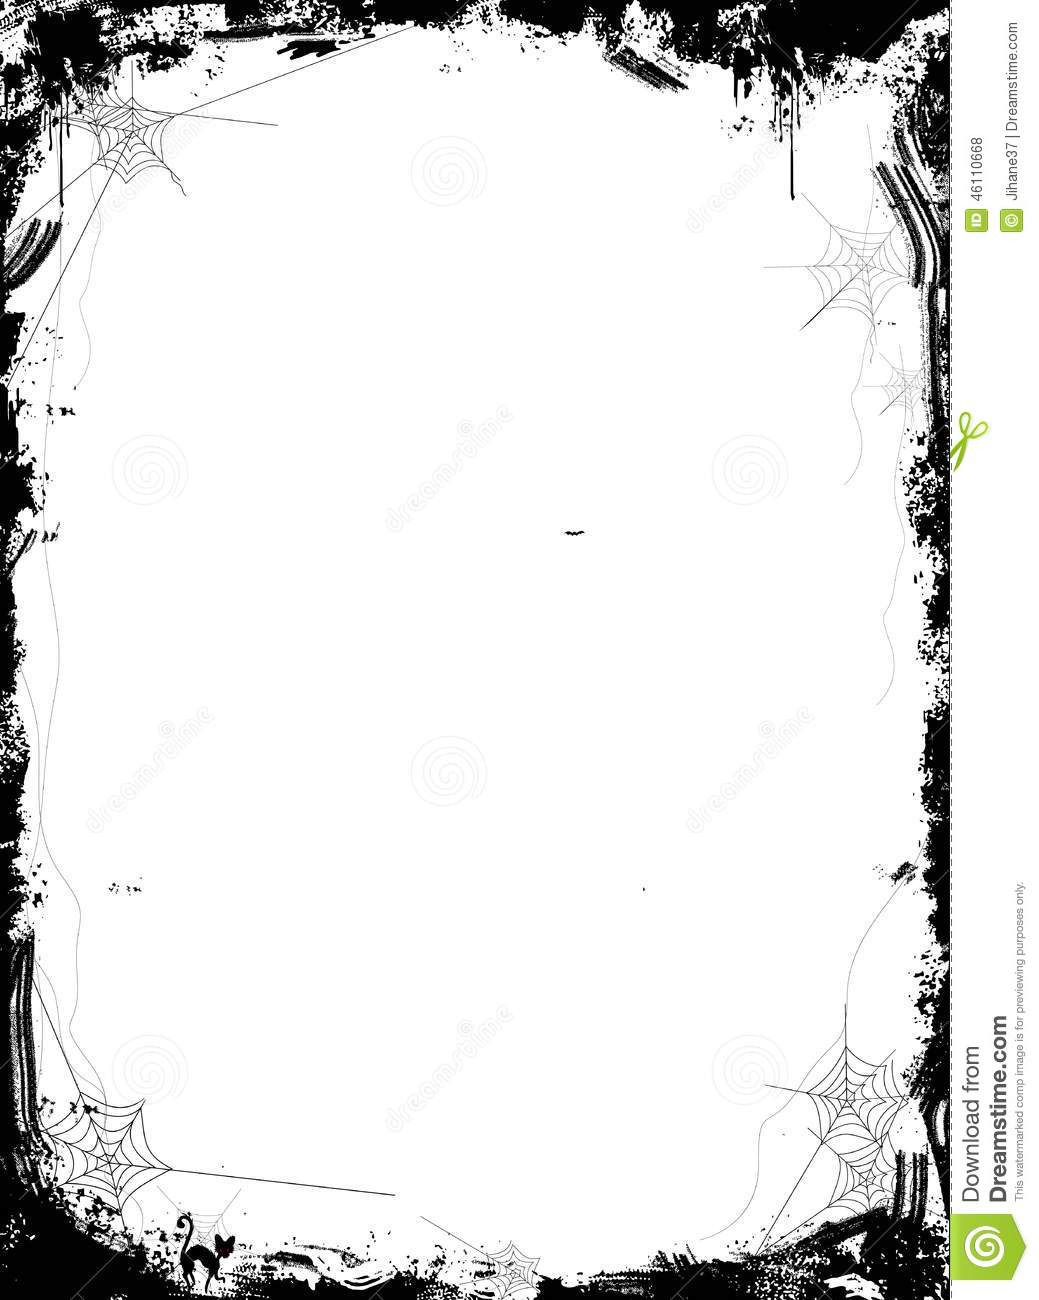 halloween background with spiders on white background stock illustration image 46110668. Black Bedroom Furniture Sets. Home Design Ideas